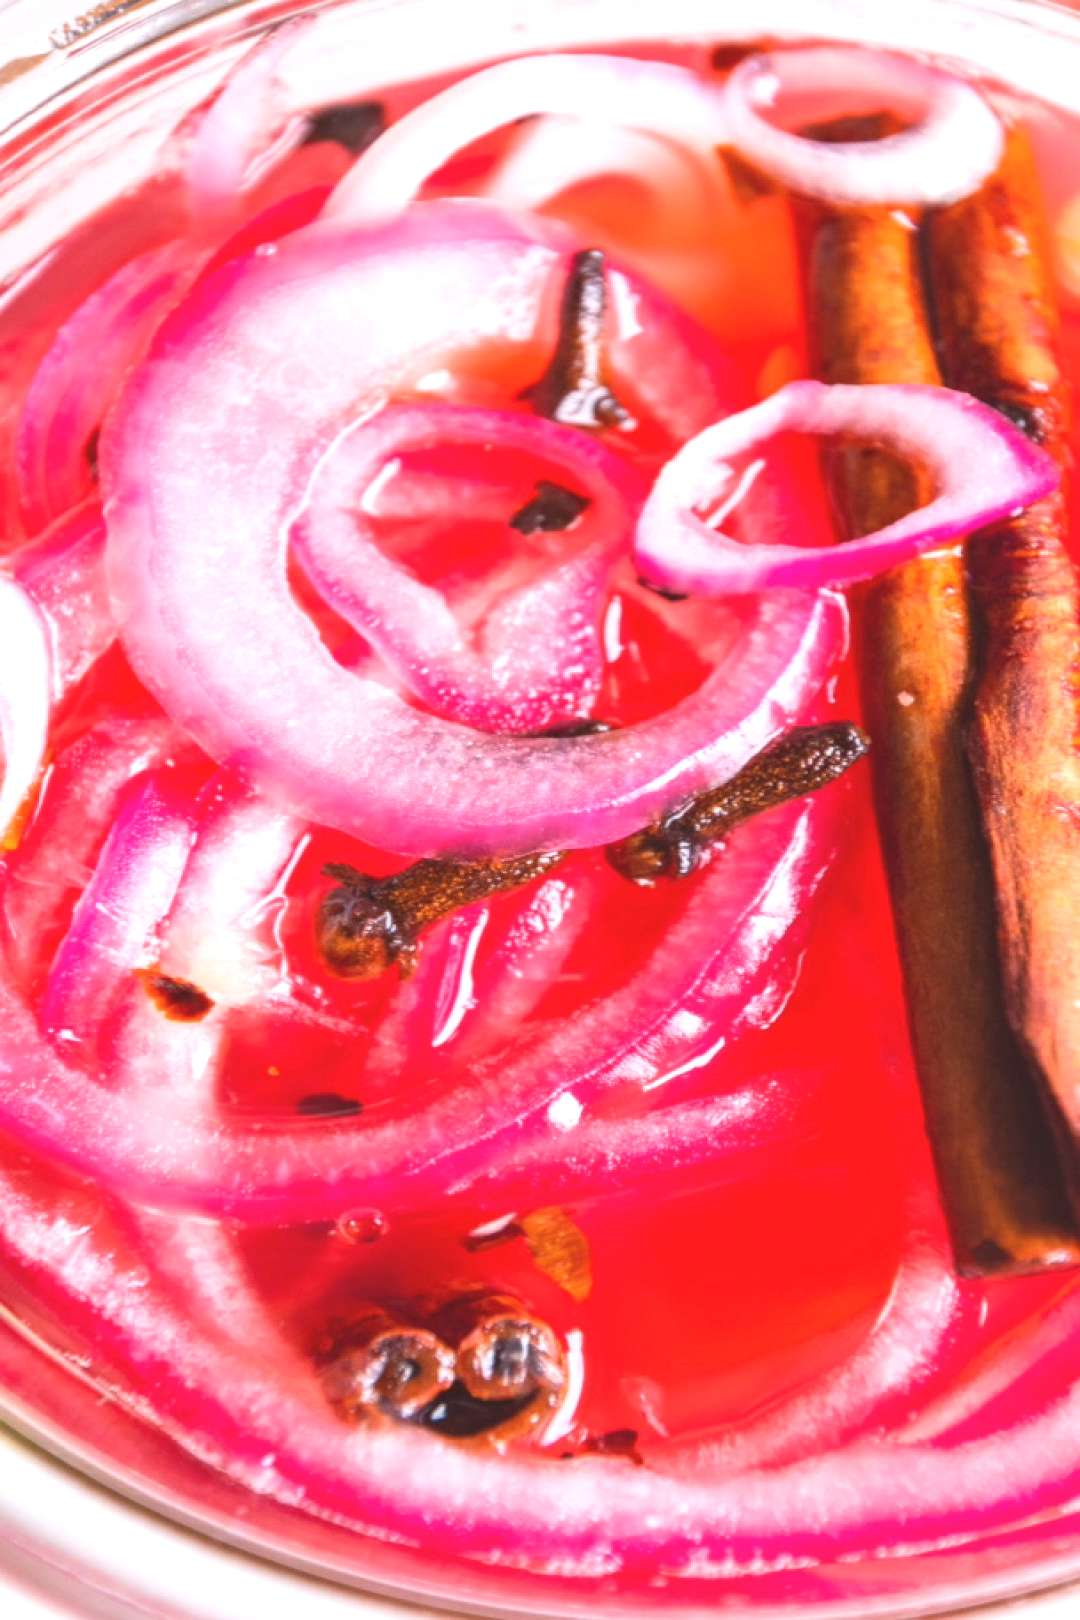 How To Make Quick Pickled Onions Video Rezept sandwiches sandwiches sandwiches sandwiches sandwiche